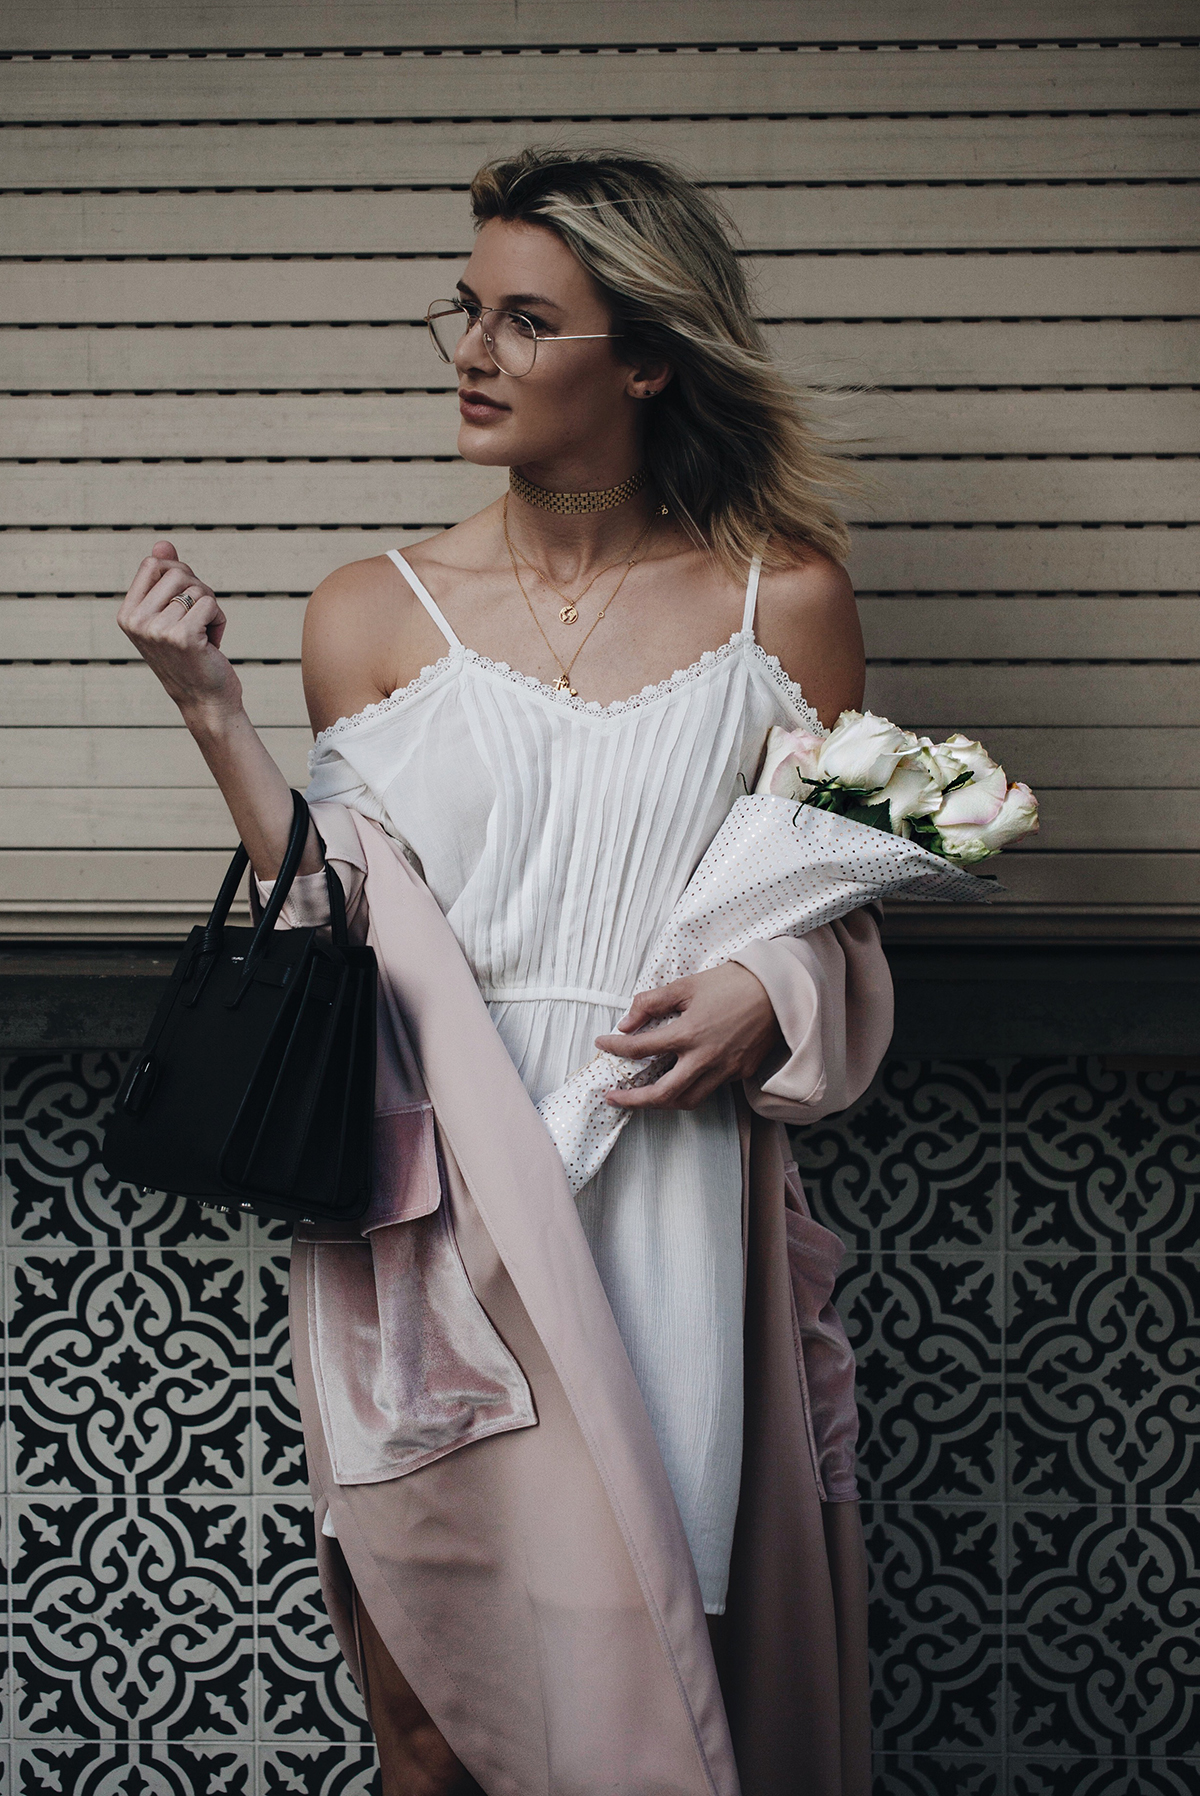 cute day date dress outfit